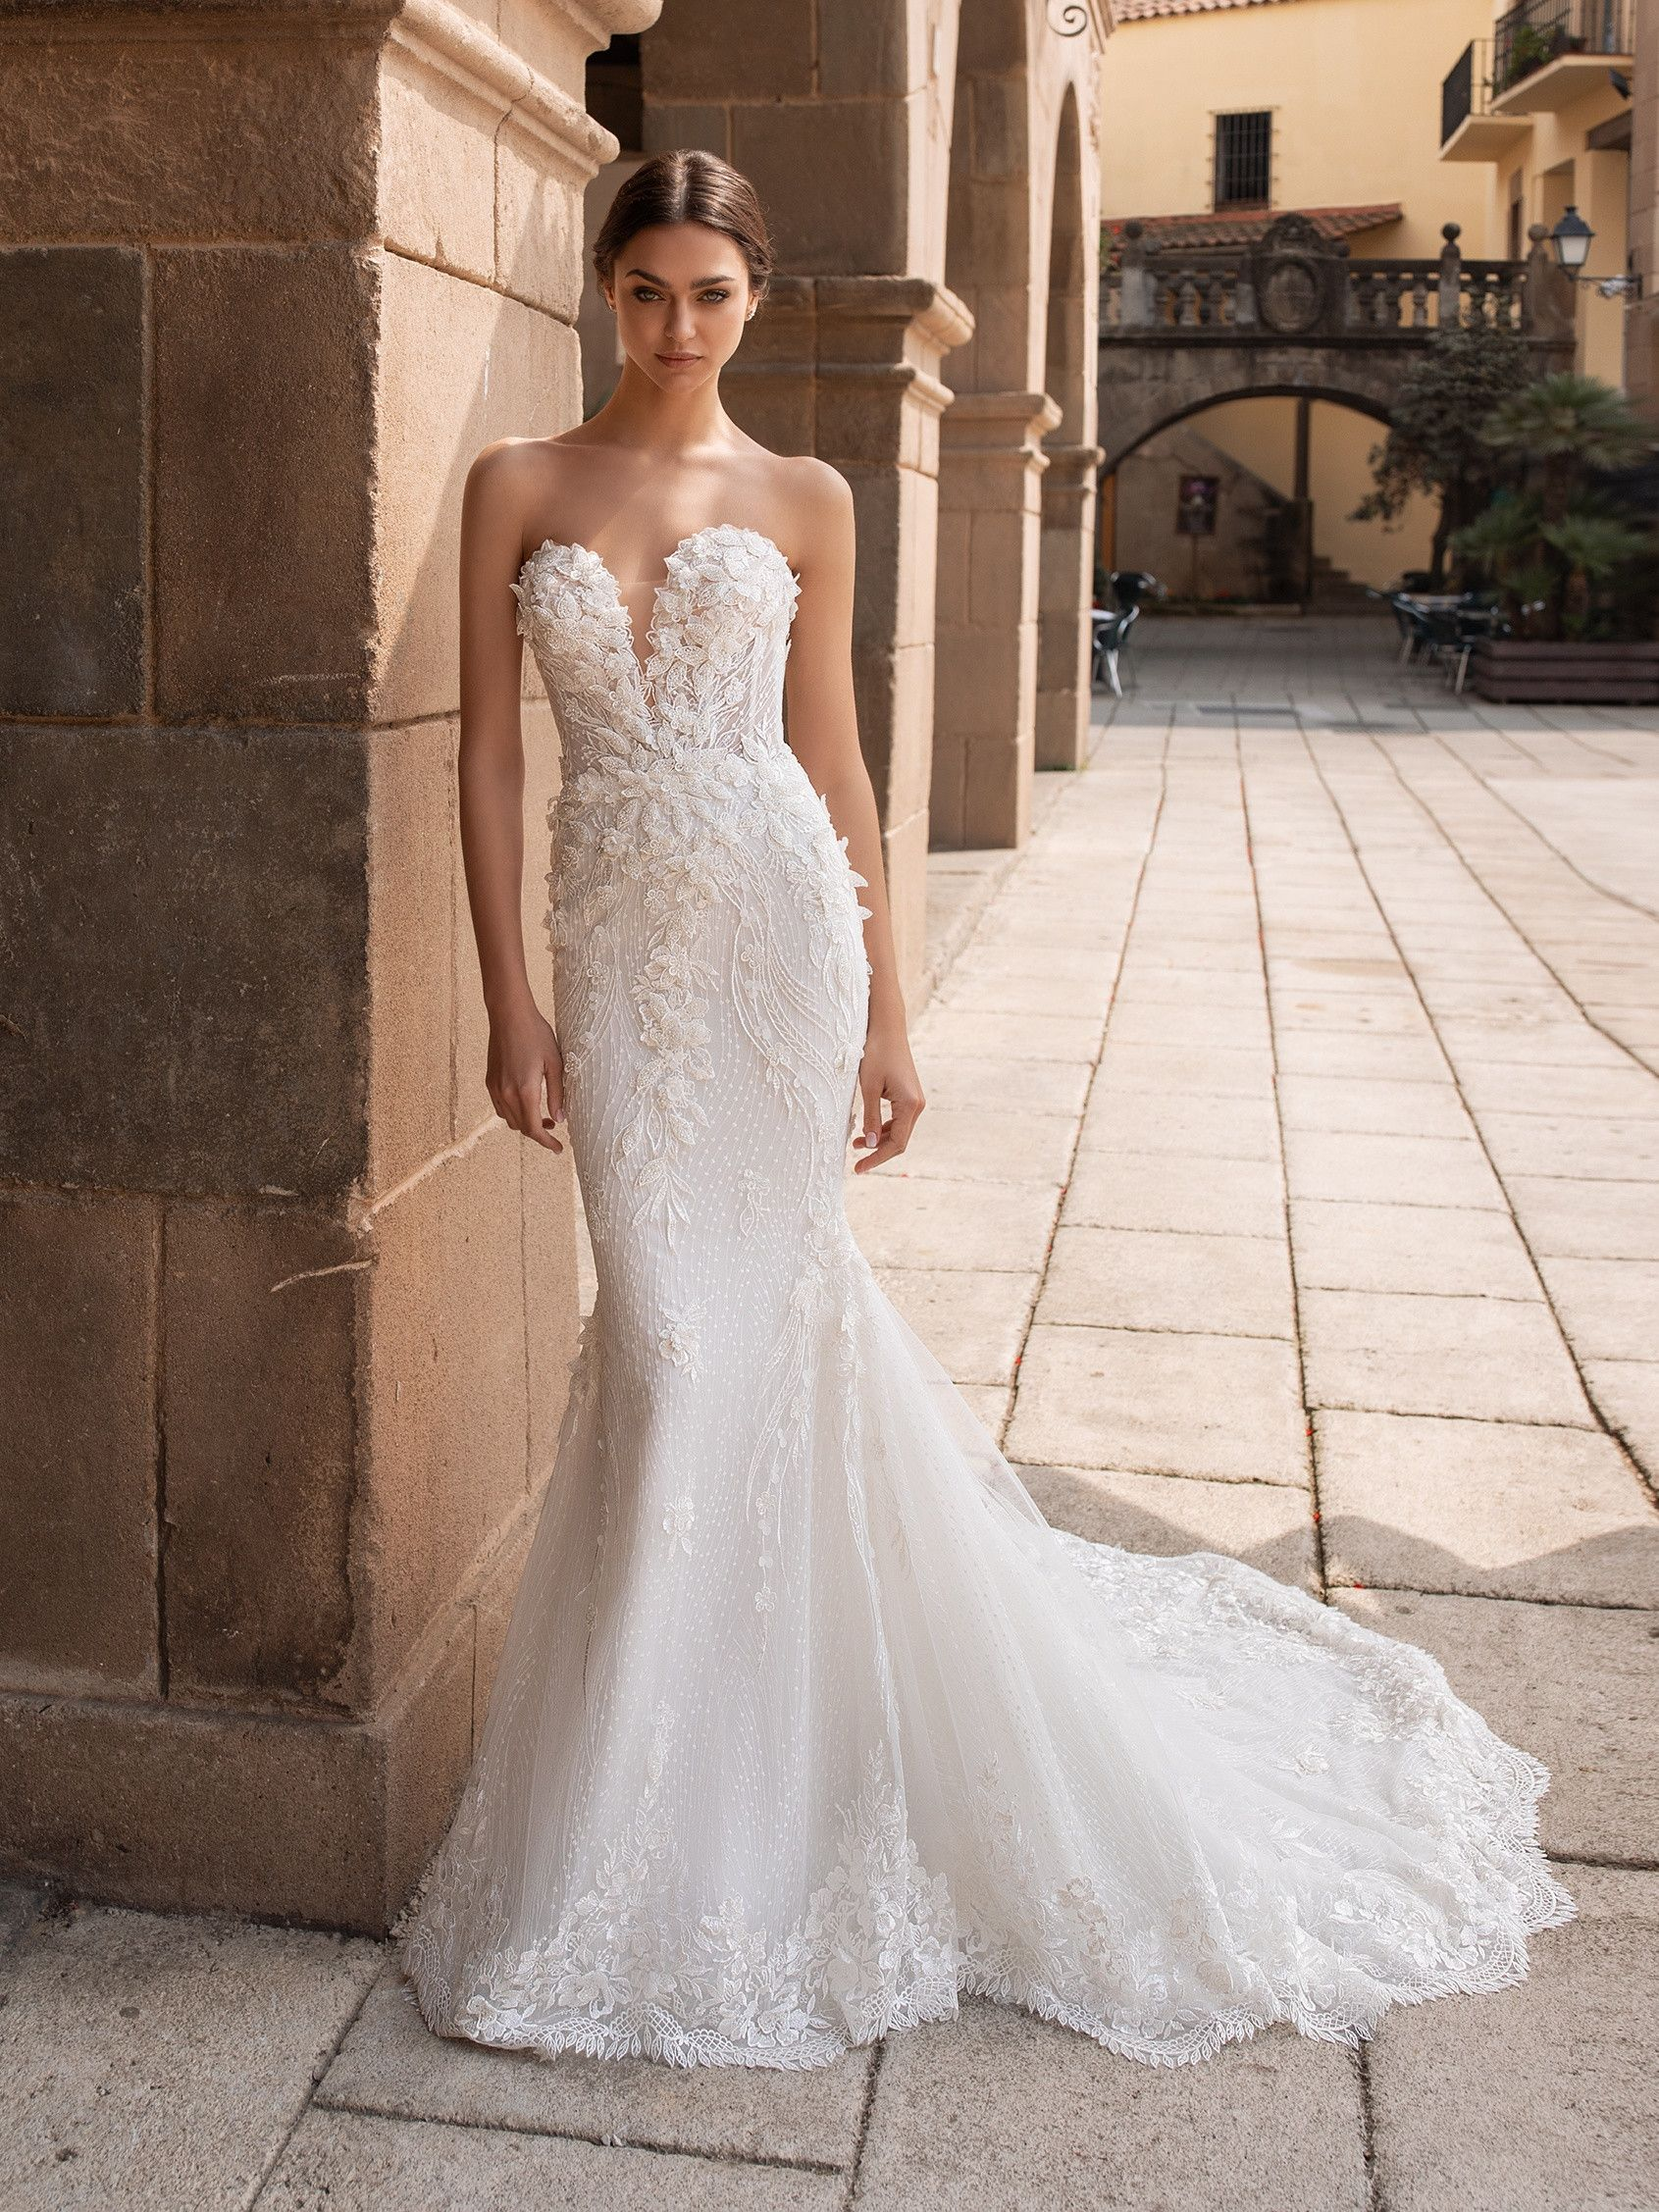 Feel Like An Authentic Princess In Our Mermaid Wedding Dress With A Sweetheart Neckline The 202 In 2020 Pronovias Wedding Dress Mermaid Wedding Dress Wedding Dresses